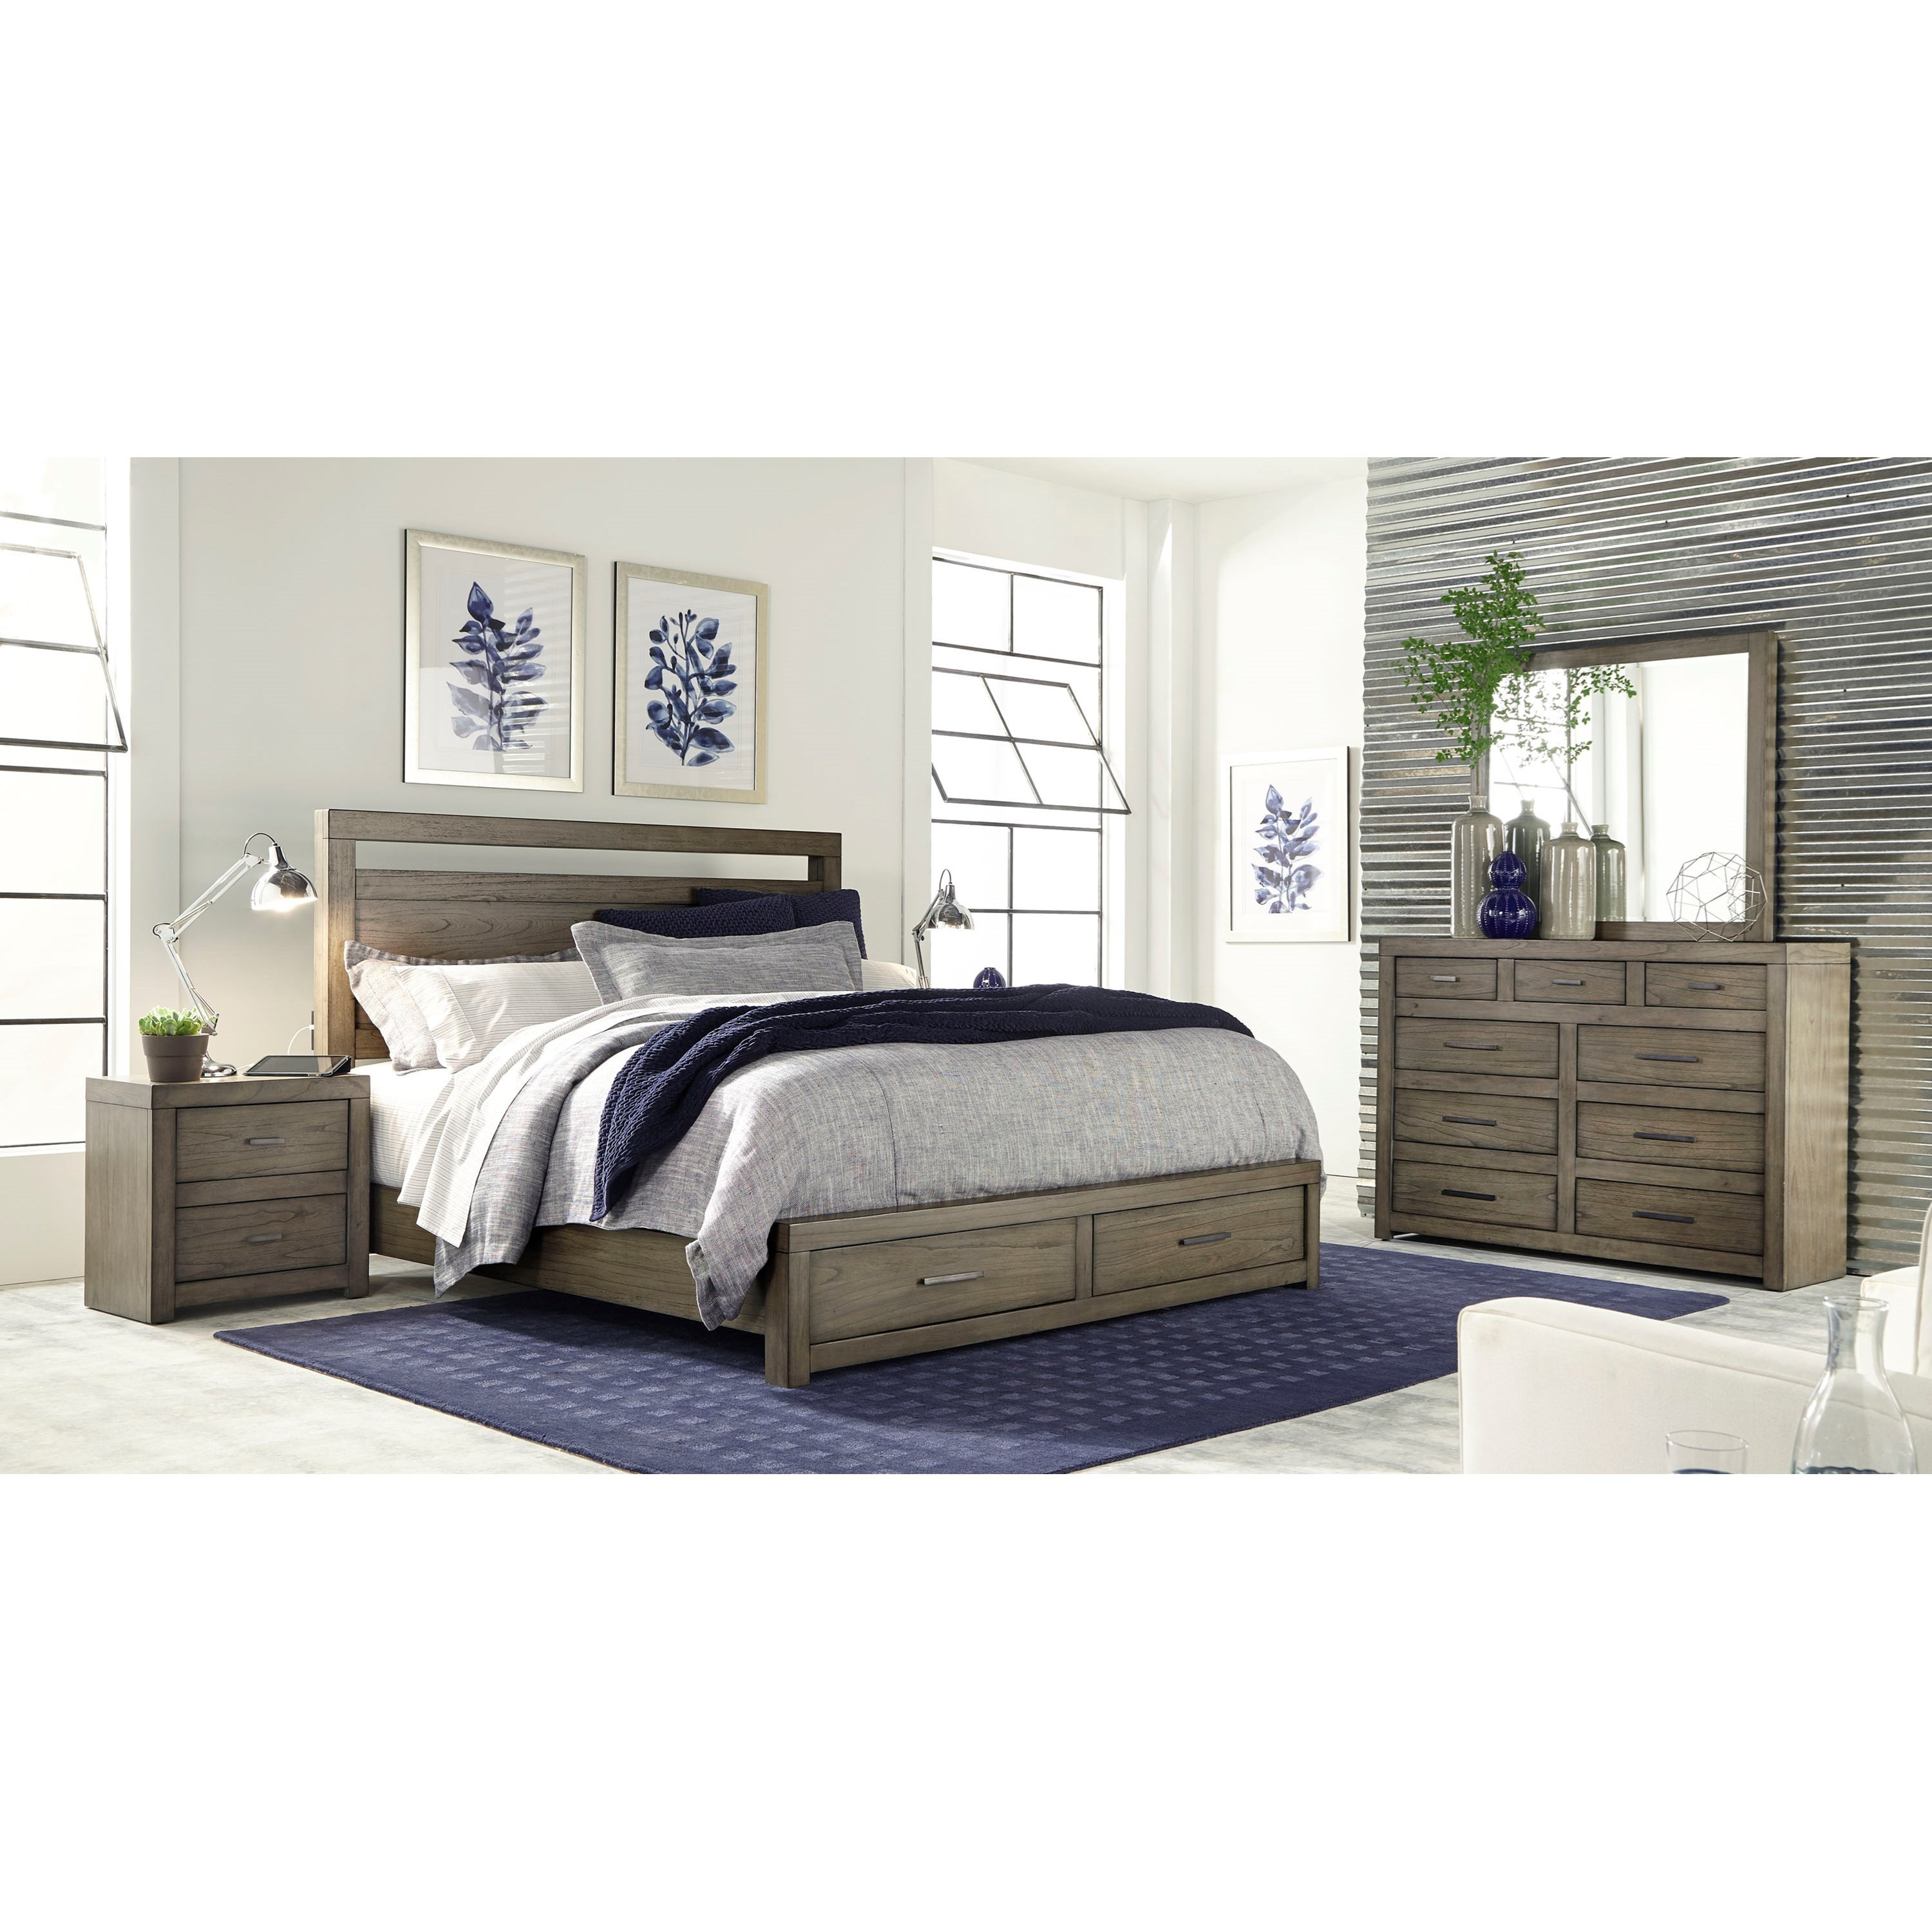 Modern Loft Queen Bedroom Group by Aspenhome at Mueller Furniture